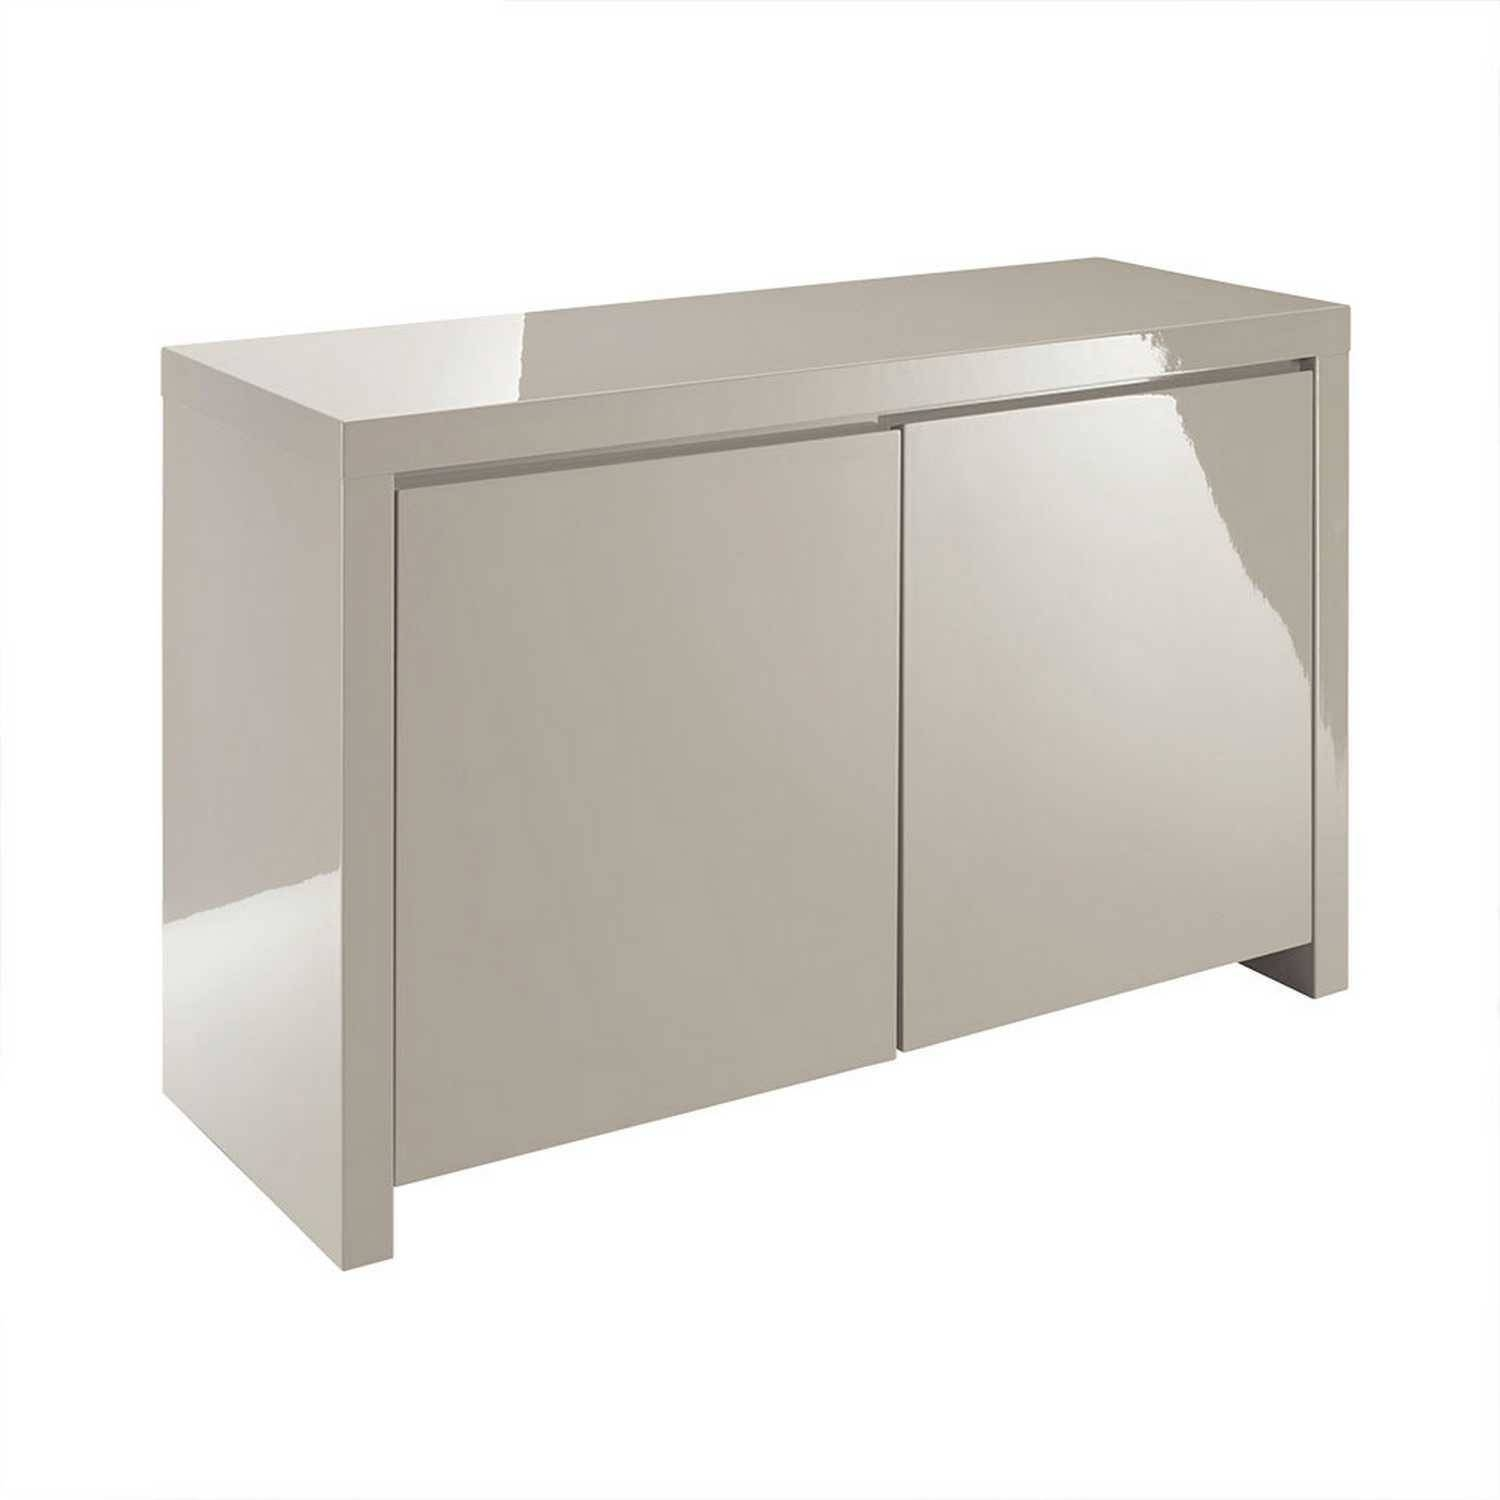 Puro Sideboard pertaining to High Gloss Cream Sideboards (Image 9 of 15)